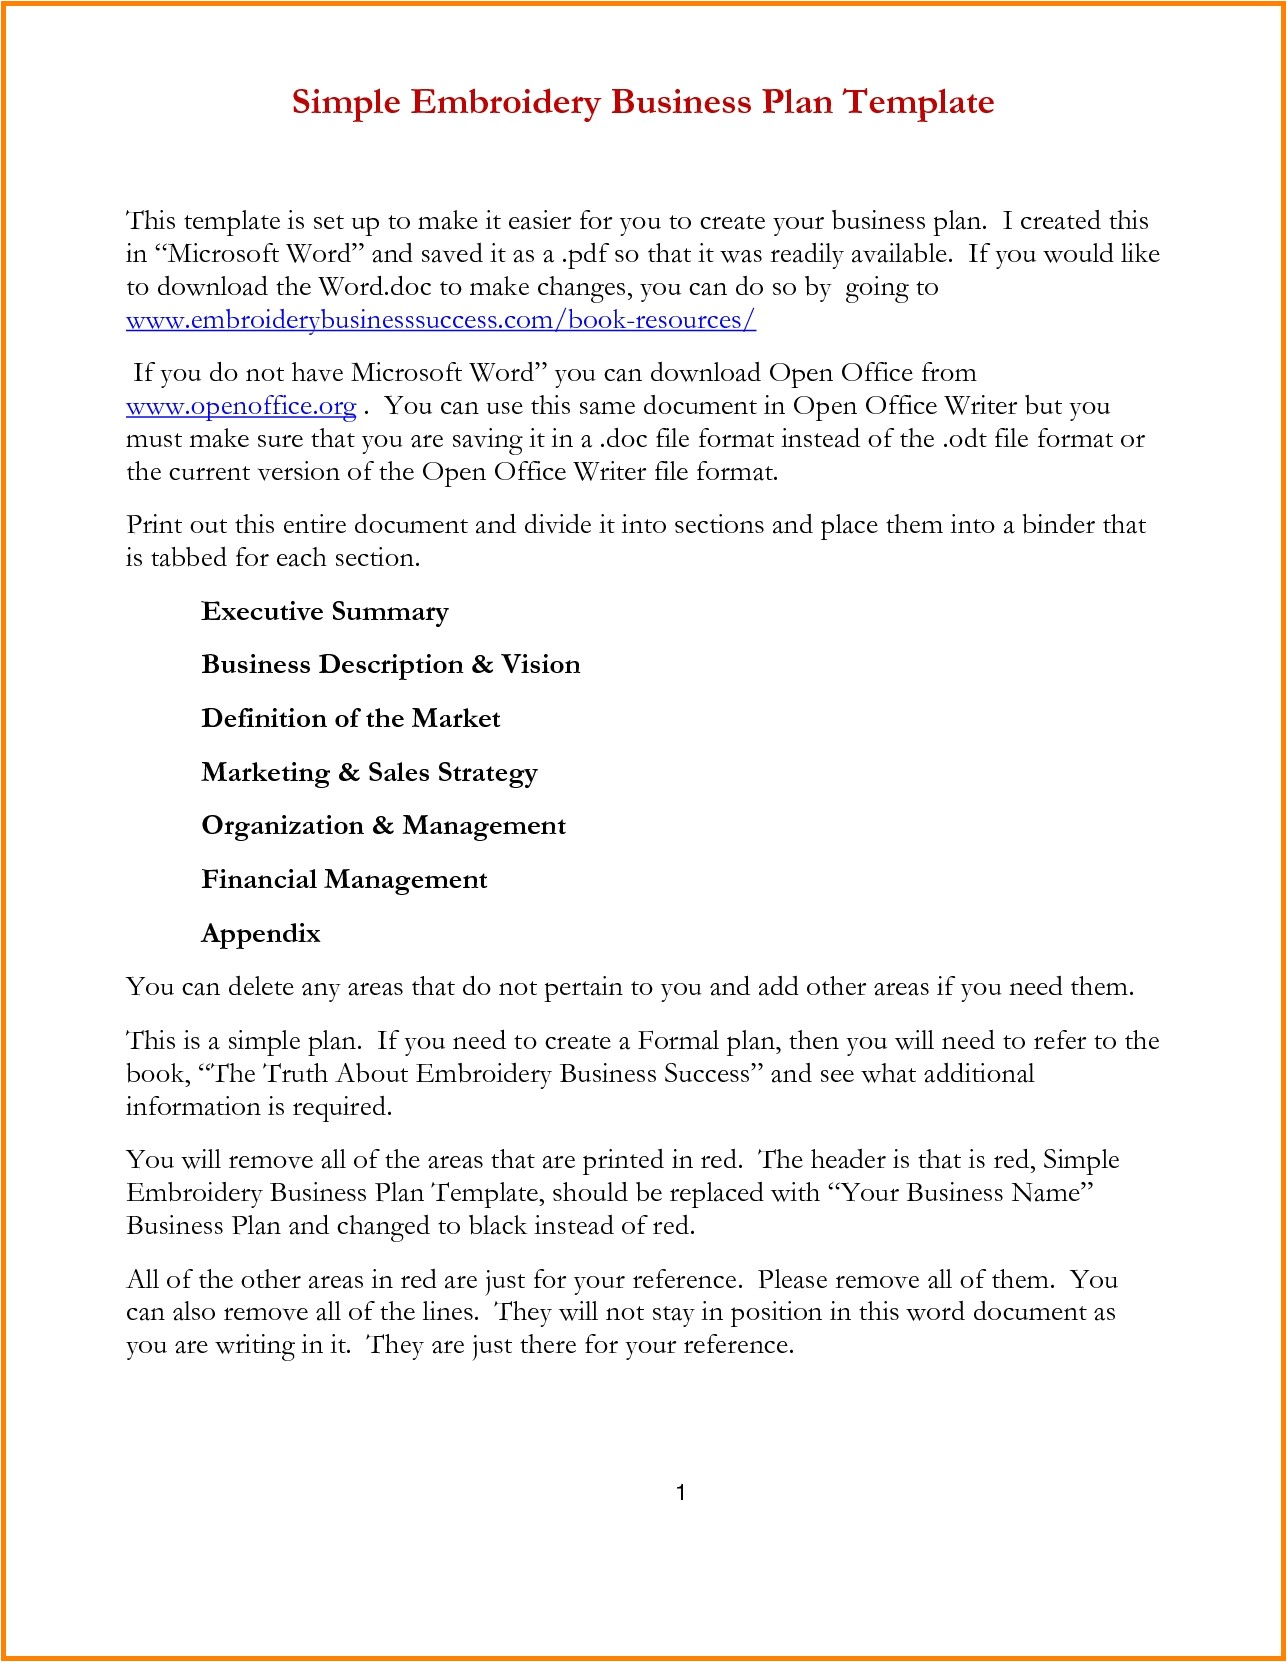 Towing Business Plan Template Simple Business Plan Template Free Download Business form